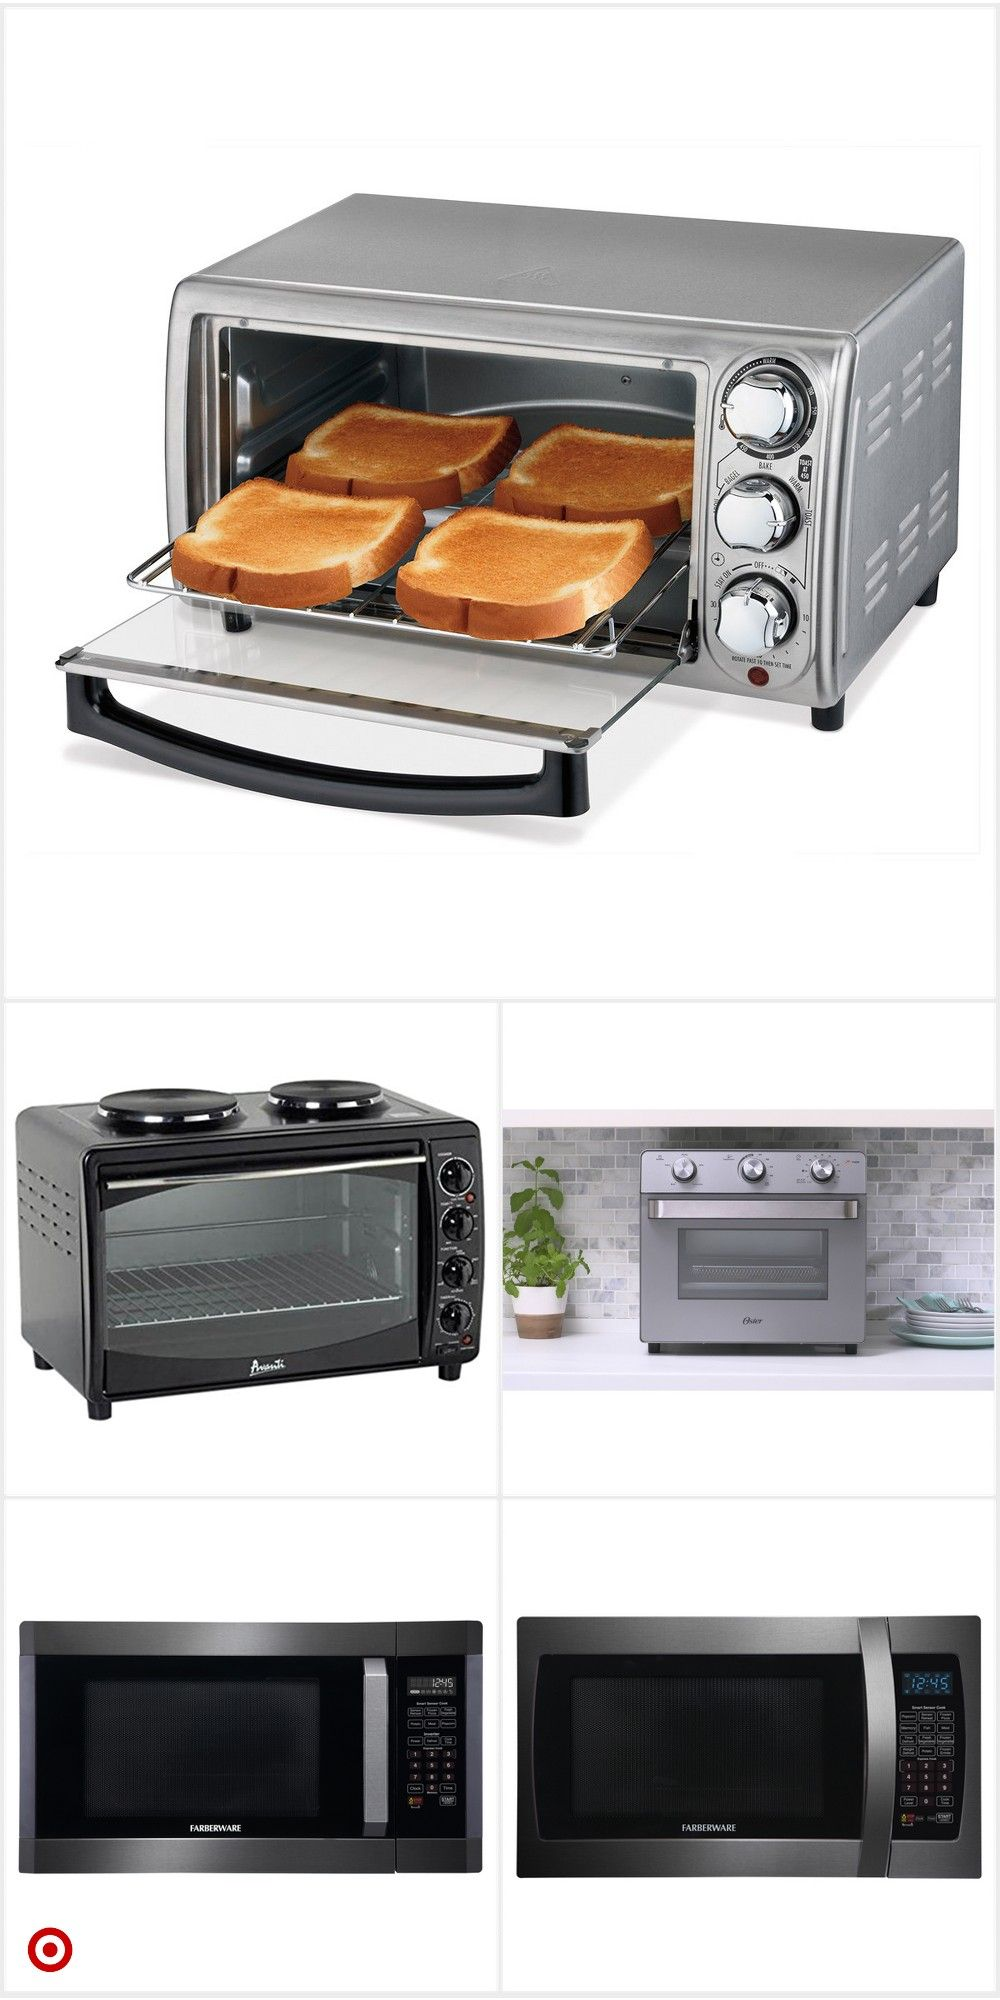 Shop Target For Countertop Ovens You Will Love At Great Low Prices Free Shipping On Orders Of 35 Or Free Same Day Pick Up In Store Countertop Oven Interior Design Living Room Kitchen